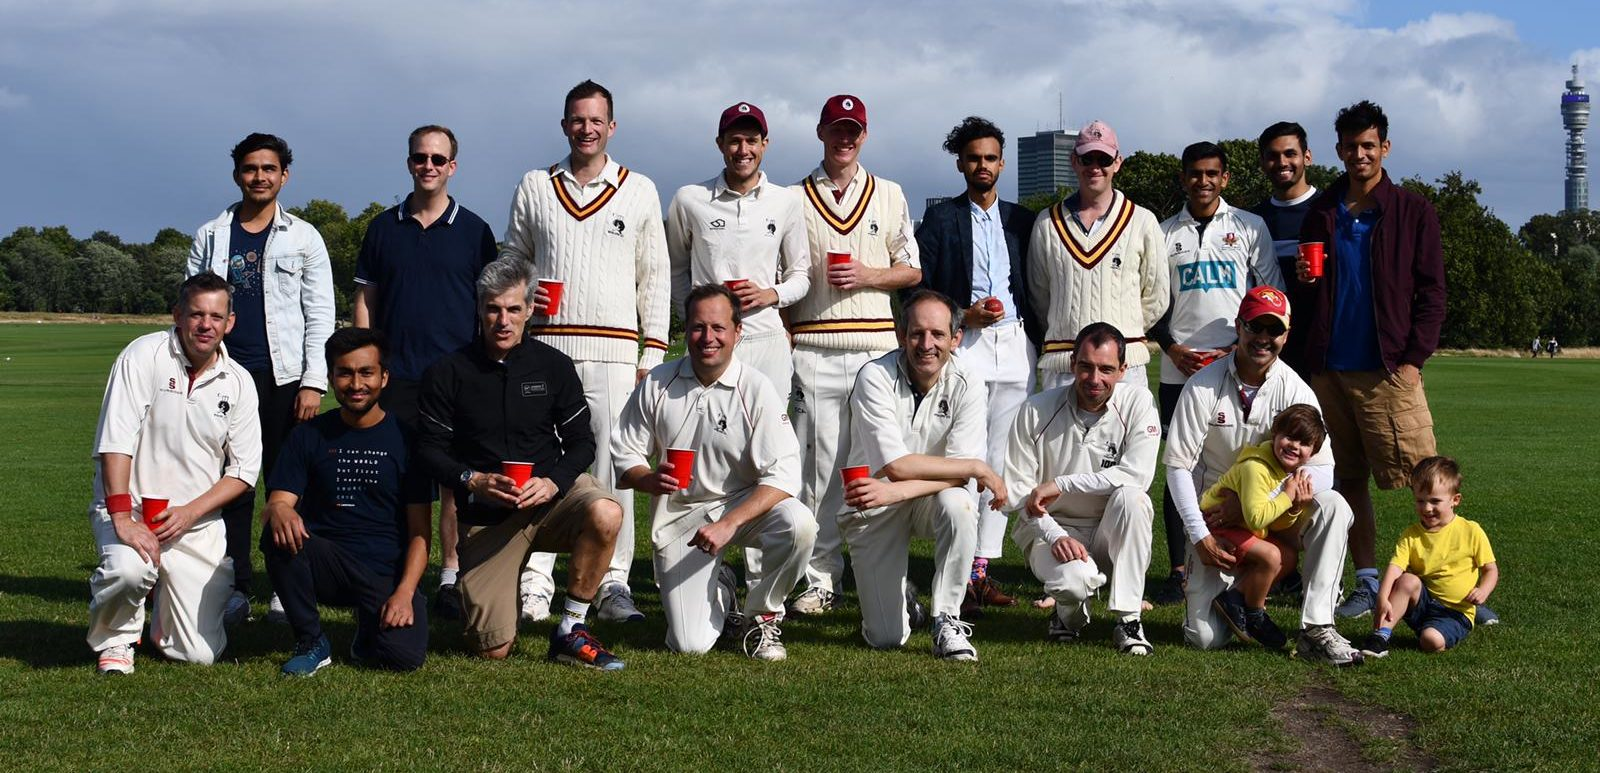 Whalers Cricket Club